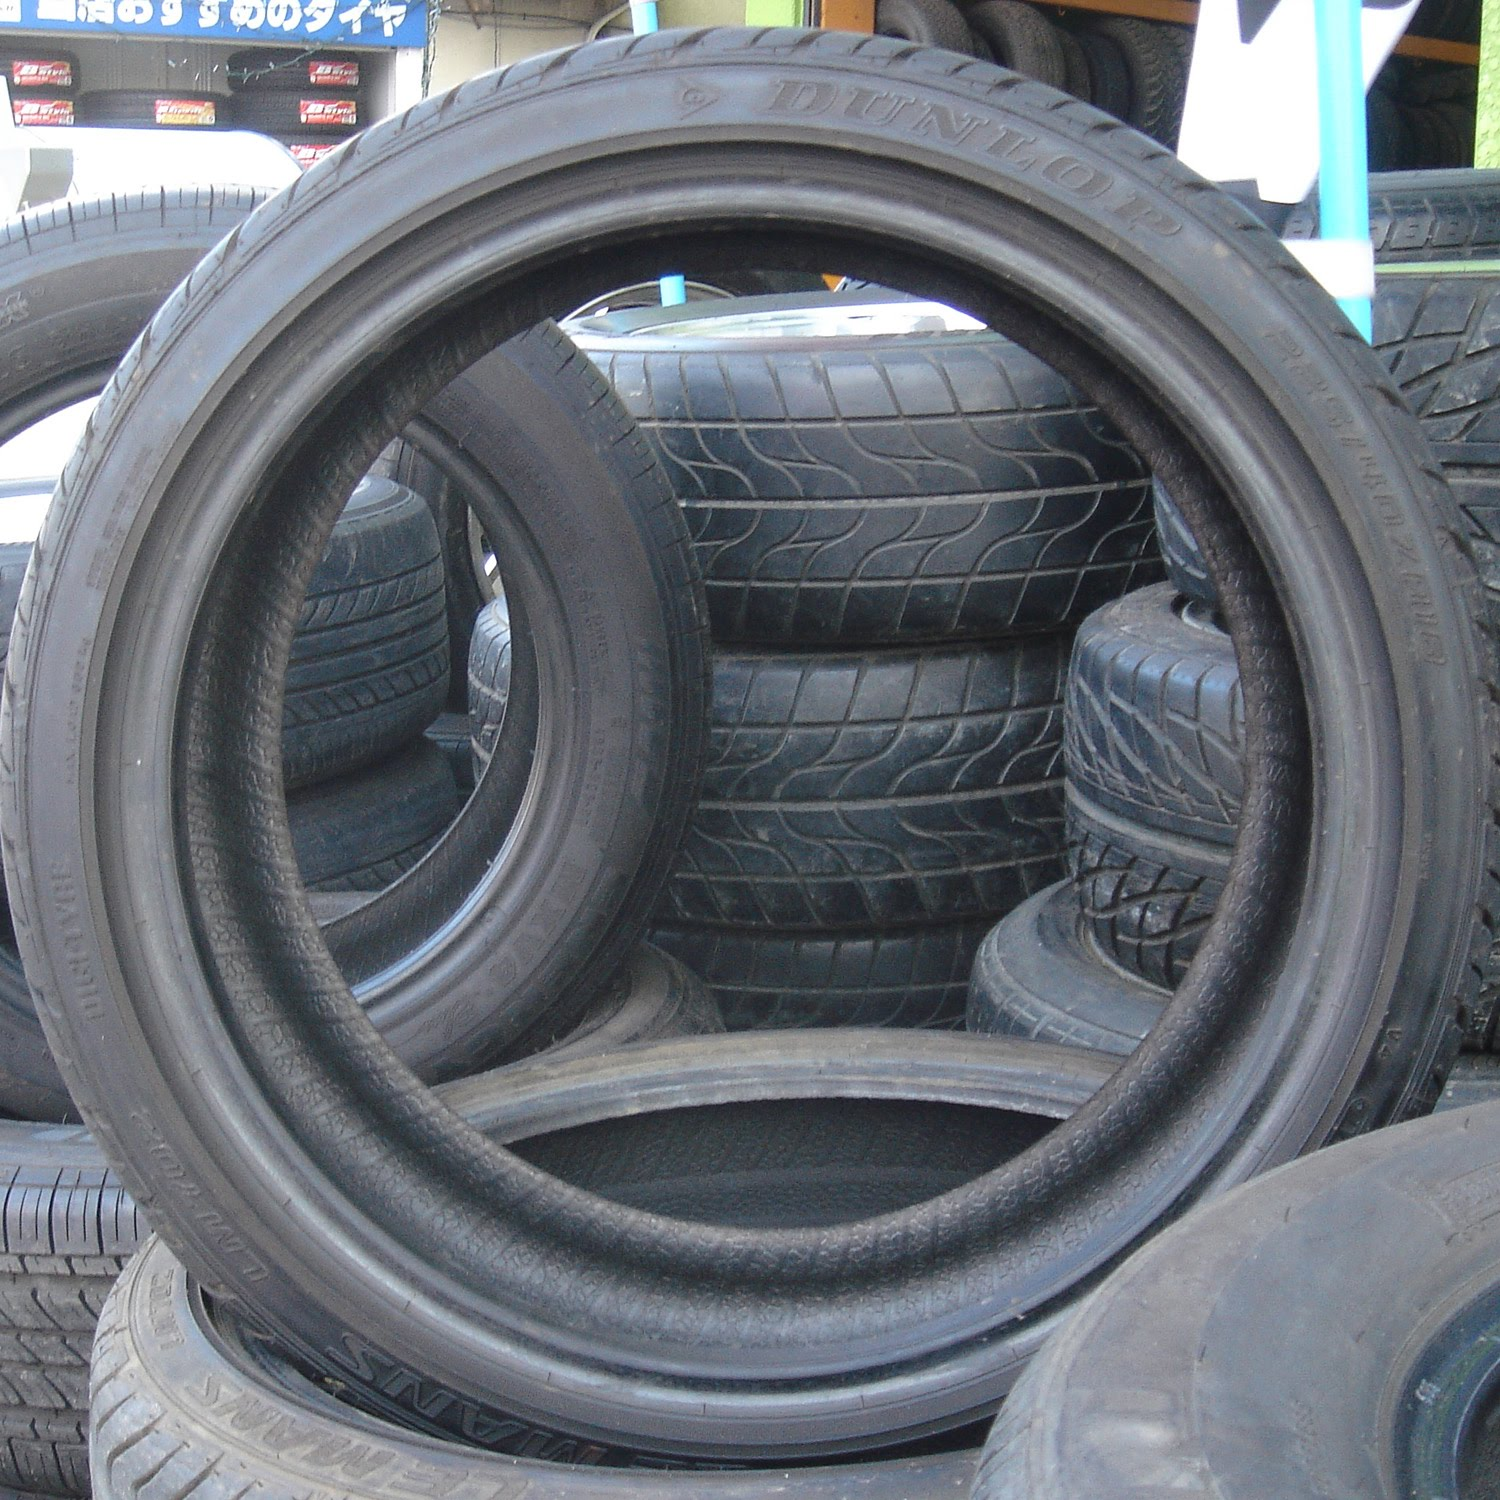 Initial Considerations in Starting a Used Tires Business